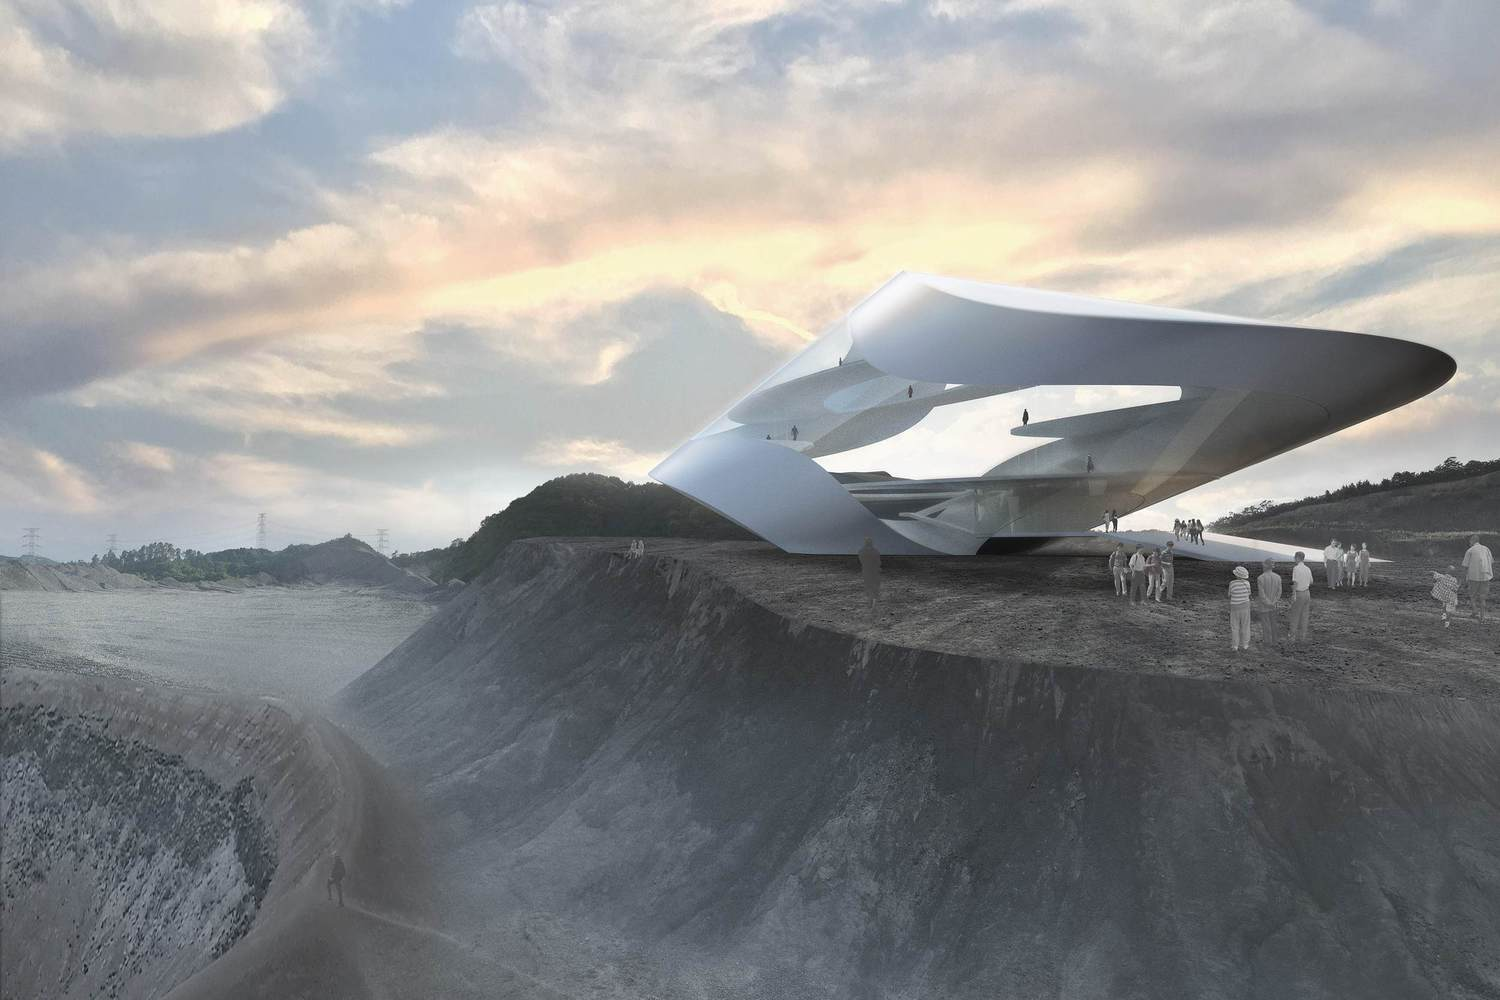 Clouds AO Unveils Floating Space Lab in Japan - news - igs magazine - 4